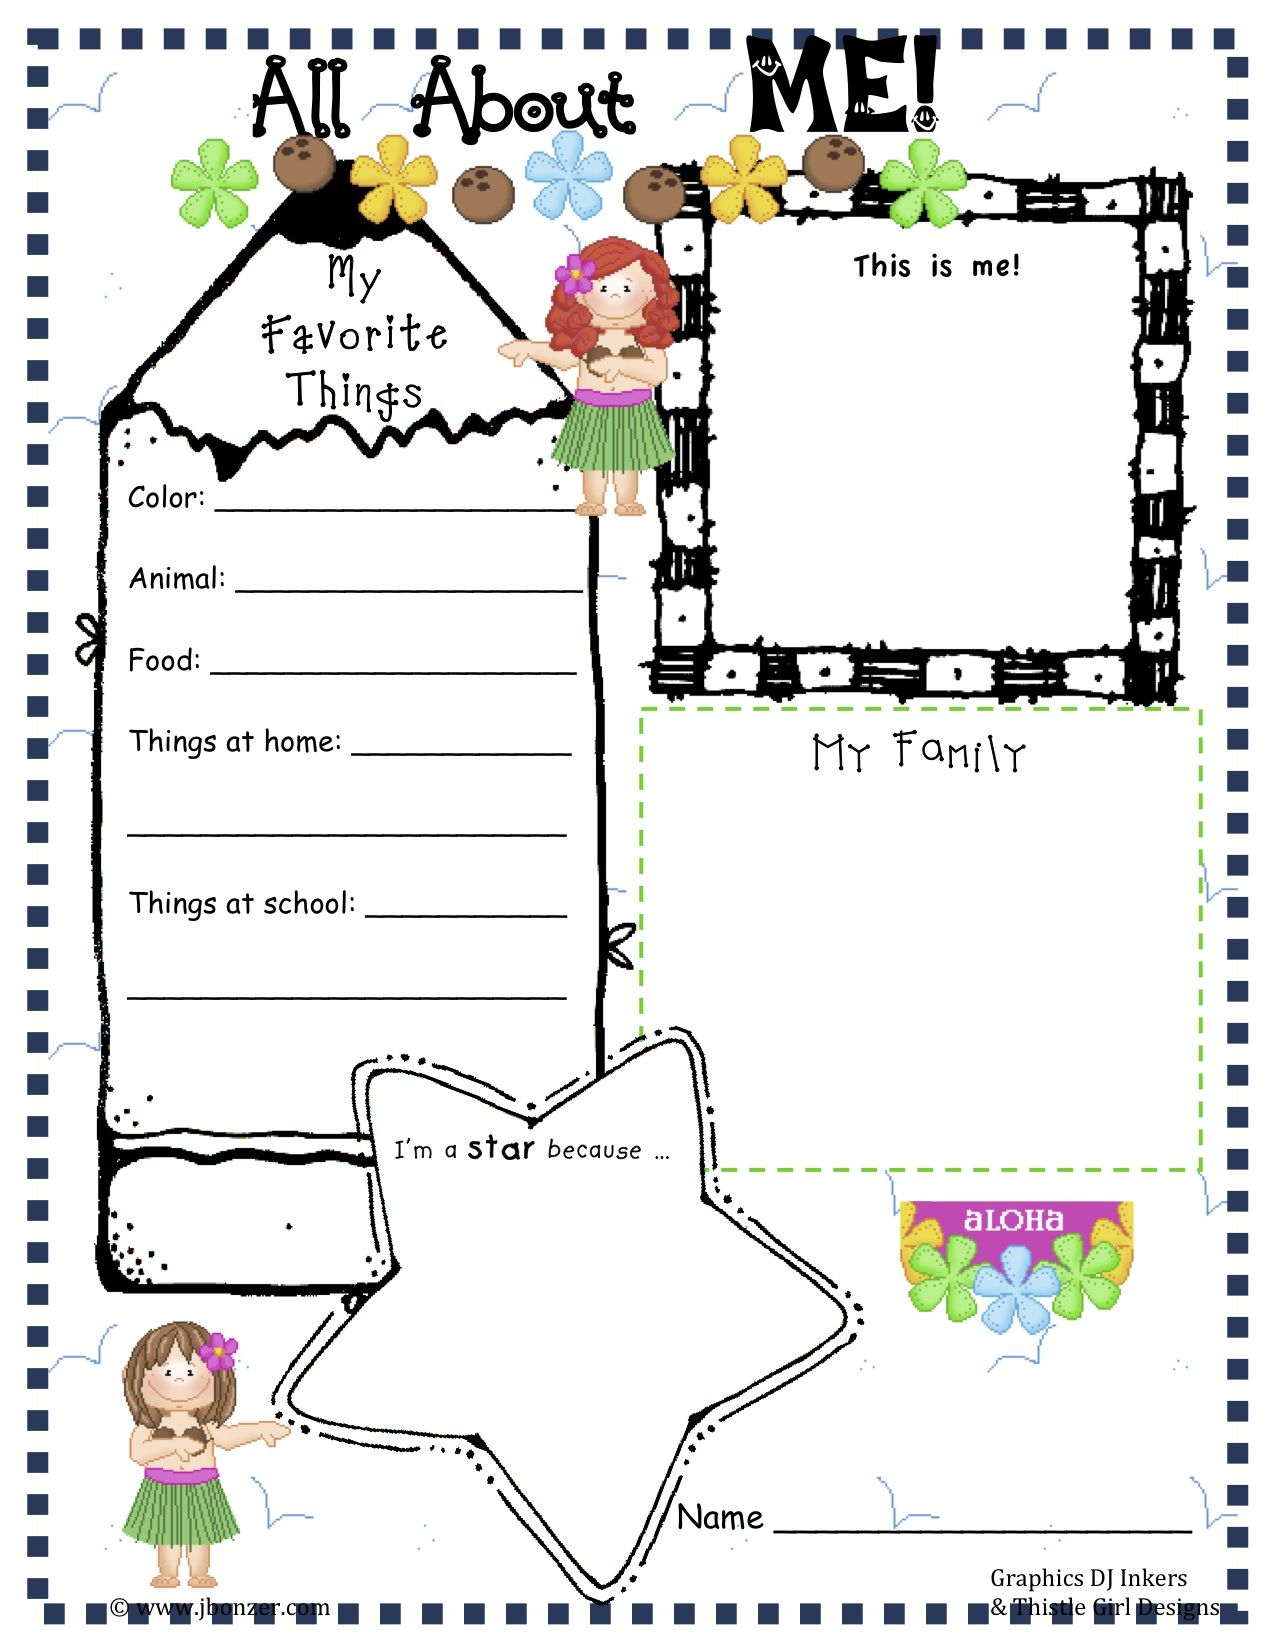 Free preschool all about me worksheets free preschool for About me template for students